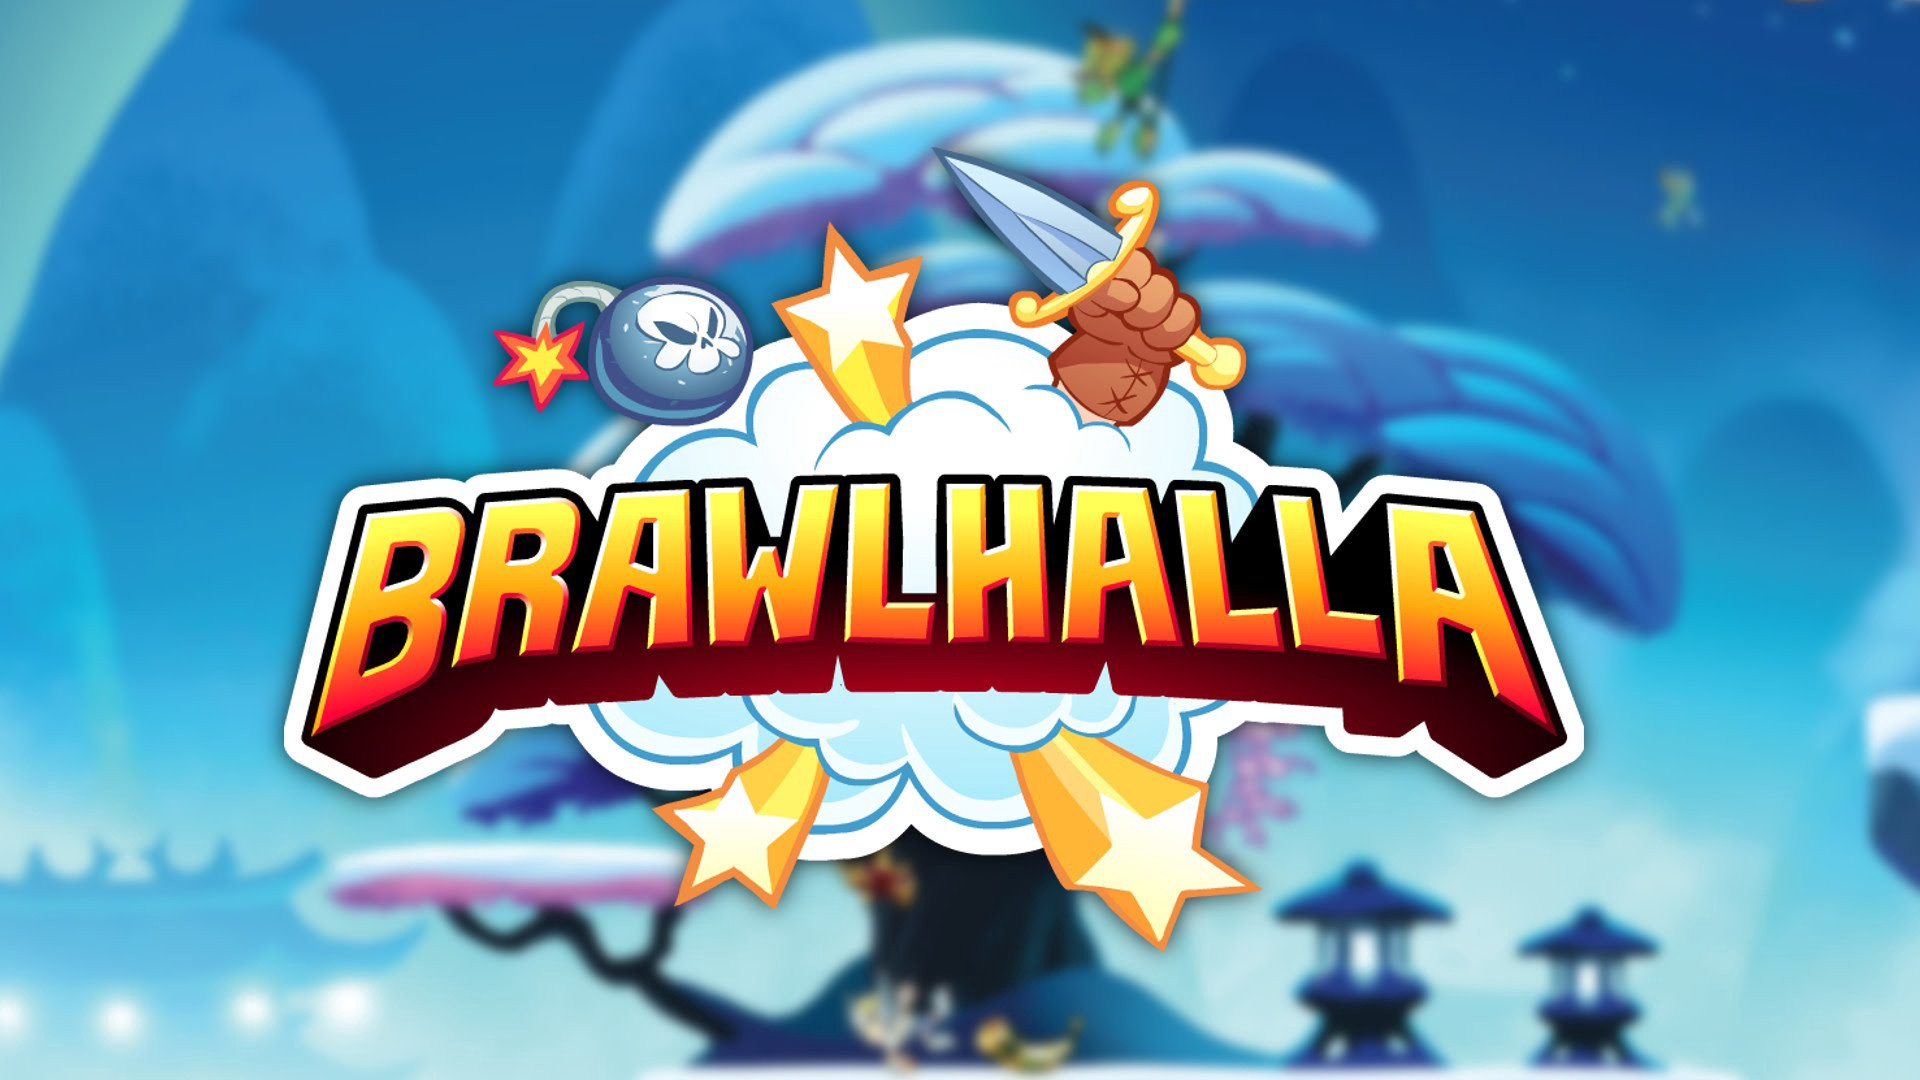 Brawlhalla wallpaper 2